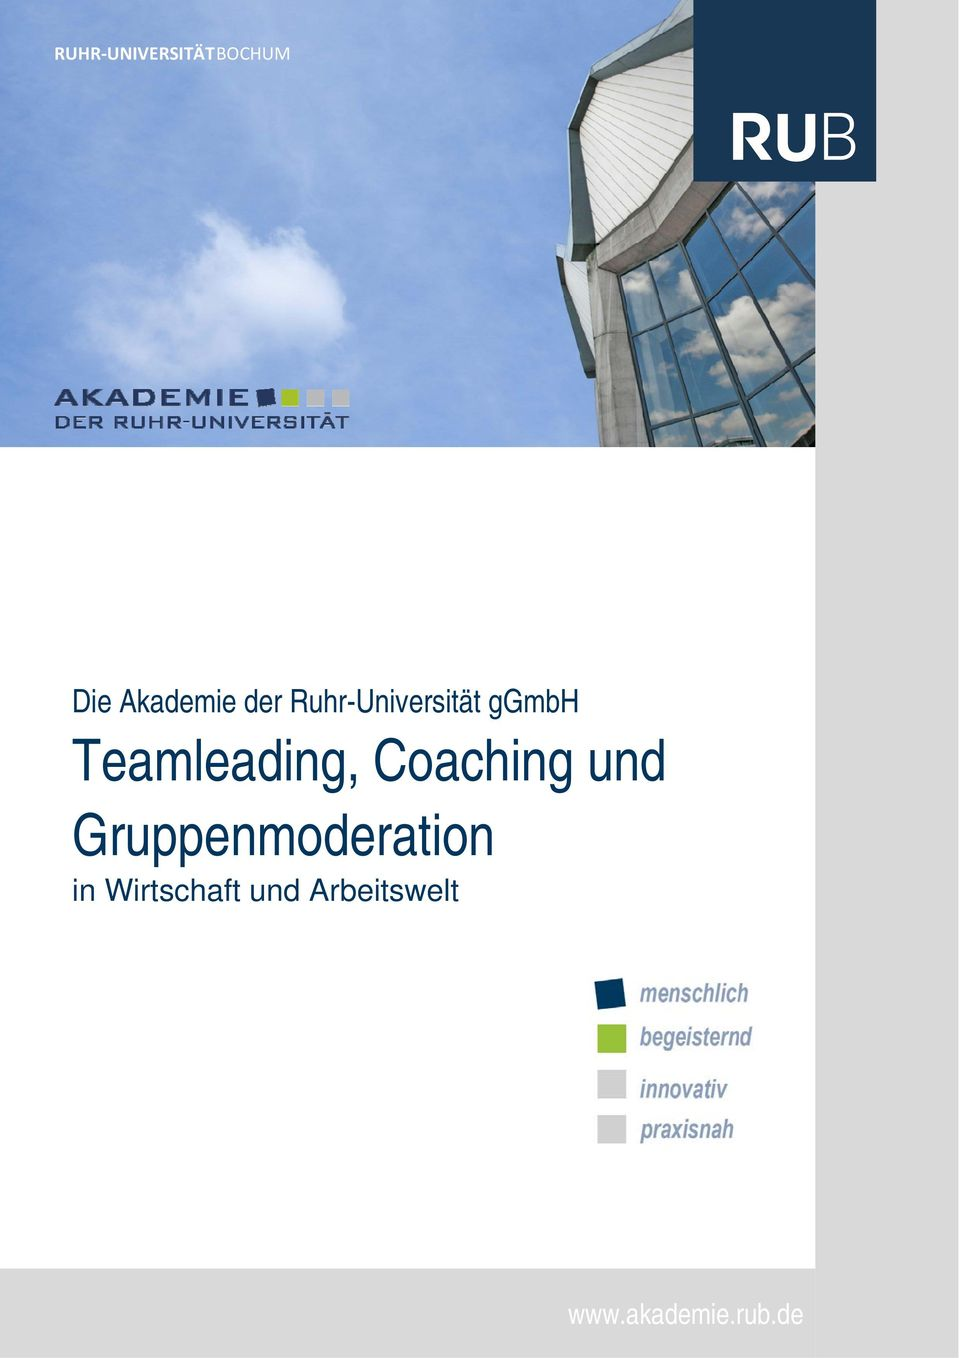 Coaching und Gruppenmoderation in